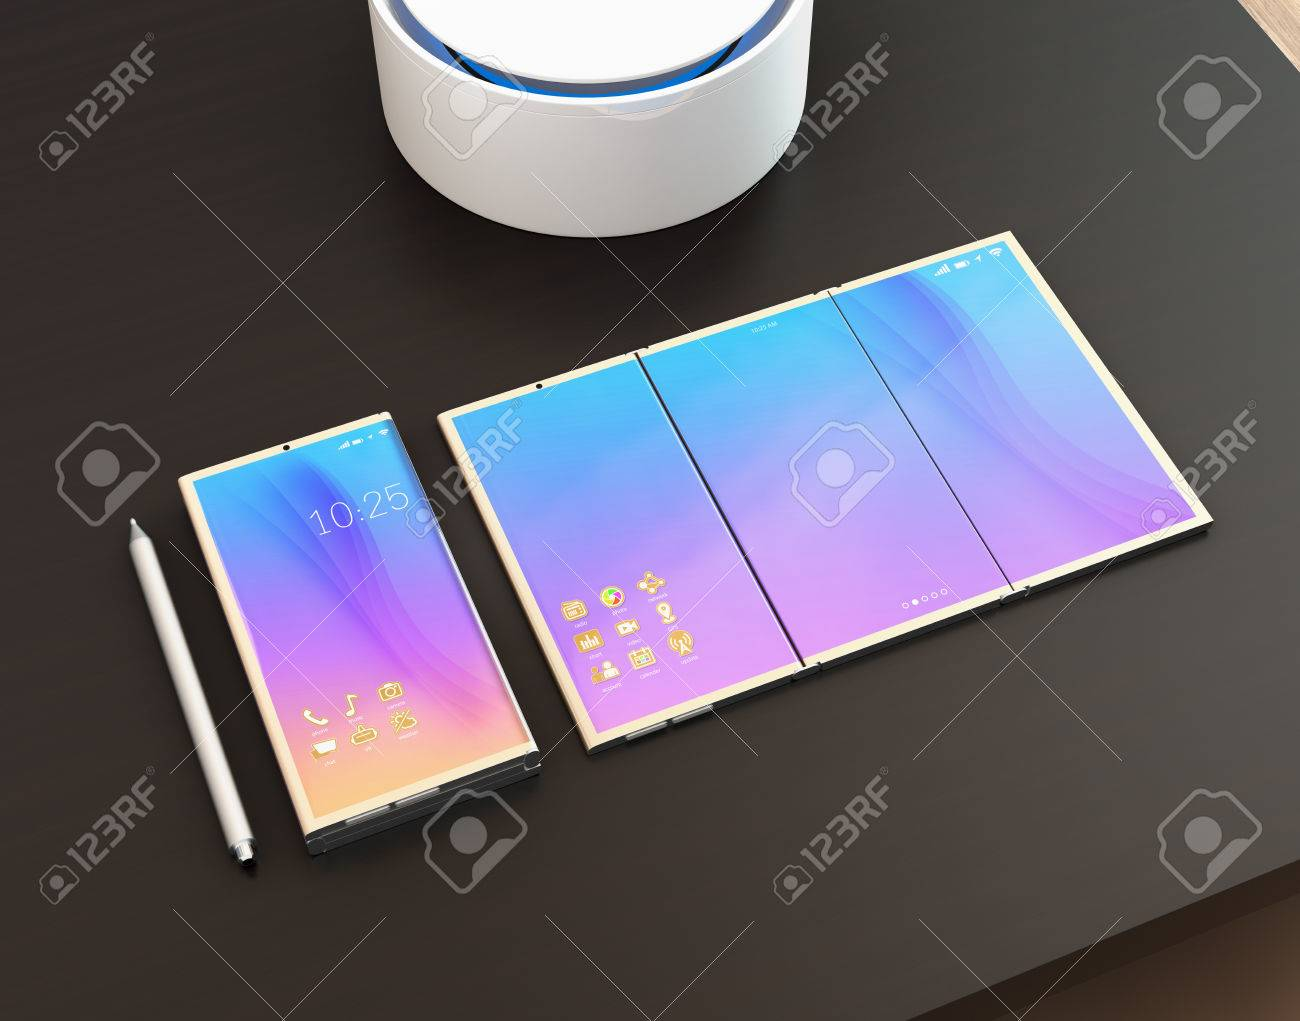 Foldable smart phone, phone that unfolded as tablet PC, digital